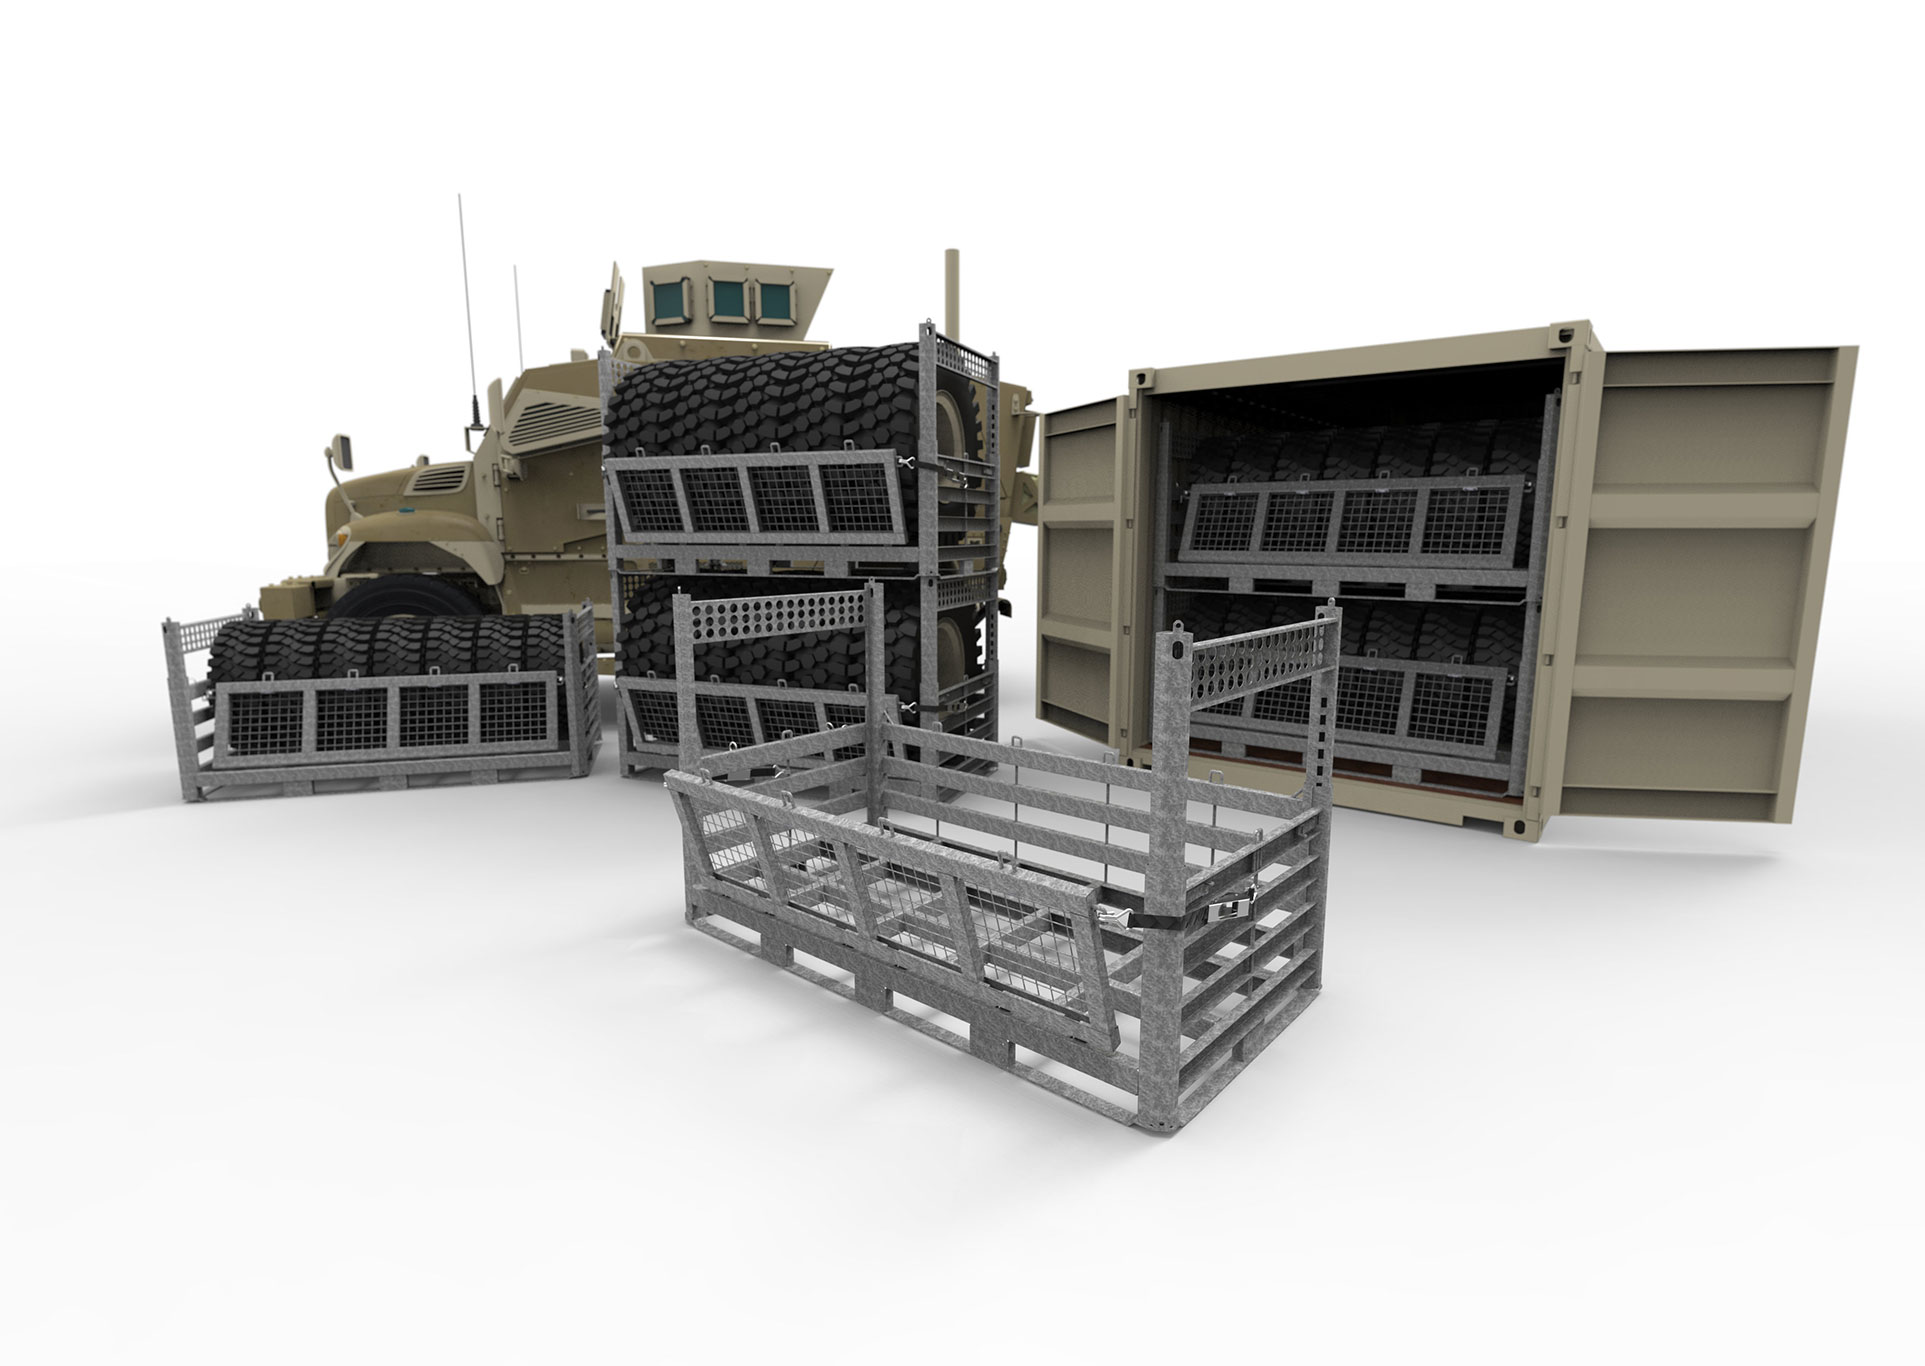 Deployable Wheel Racks for Military Storage